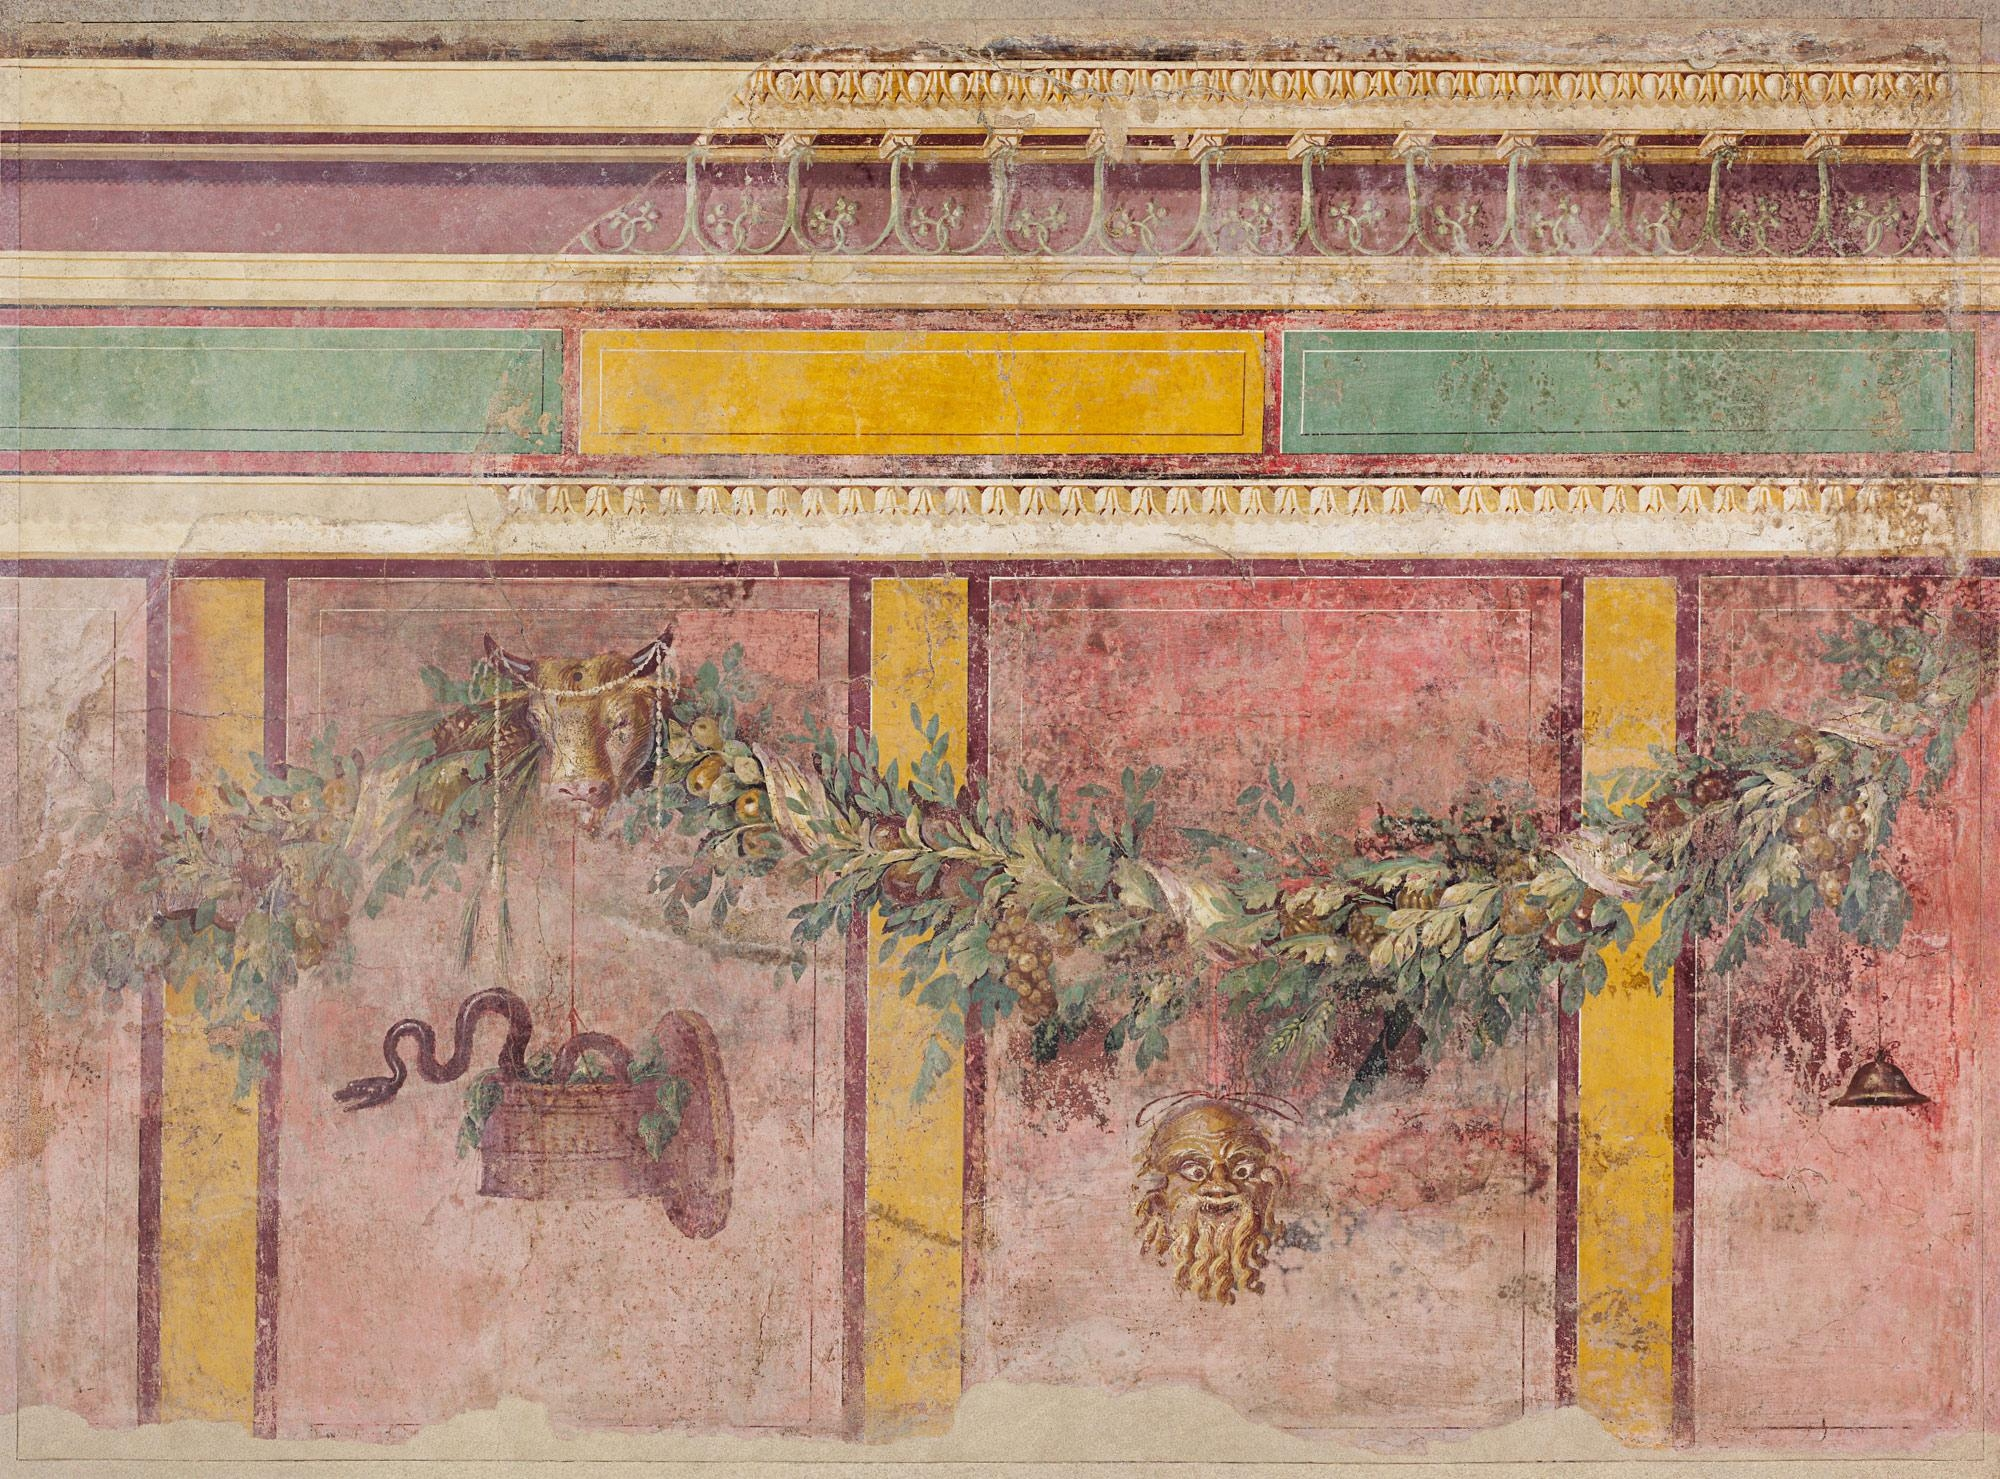 Wall Painting From The West Wall Of Room L Of The Villa Of P Within Italian Villa Wall Art (Image 20 of 20)